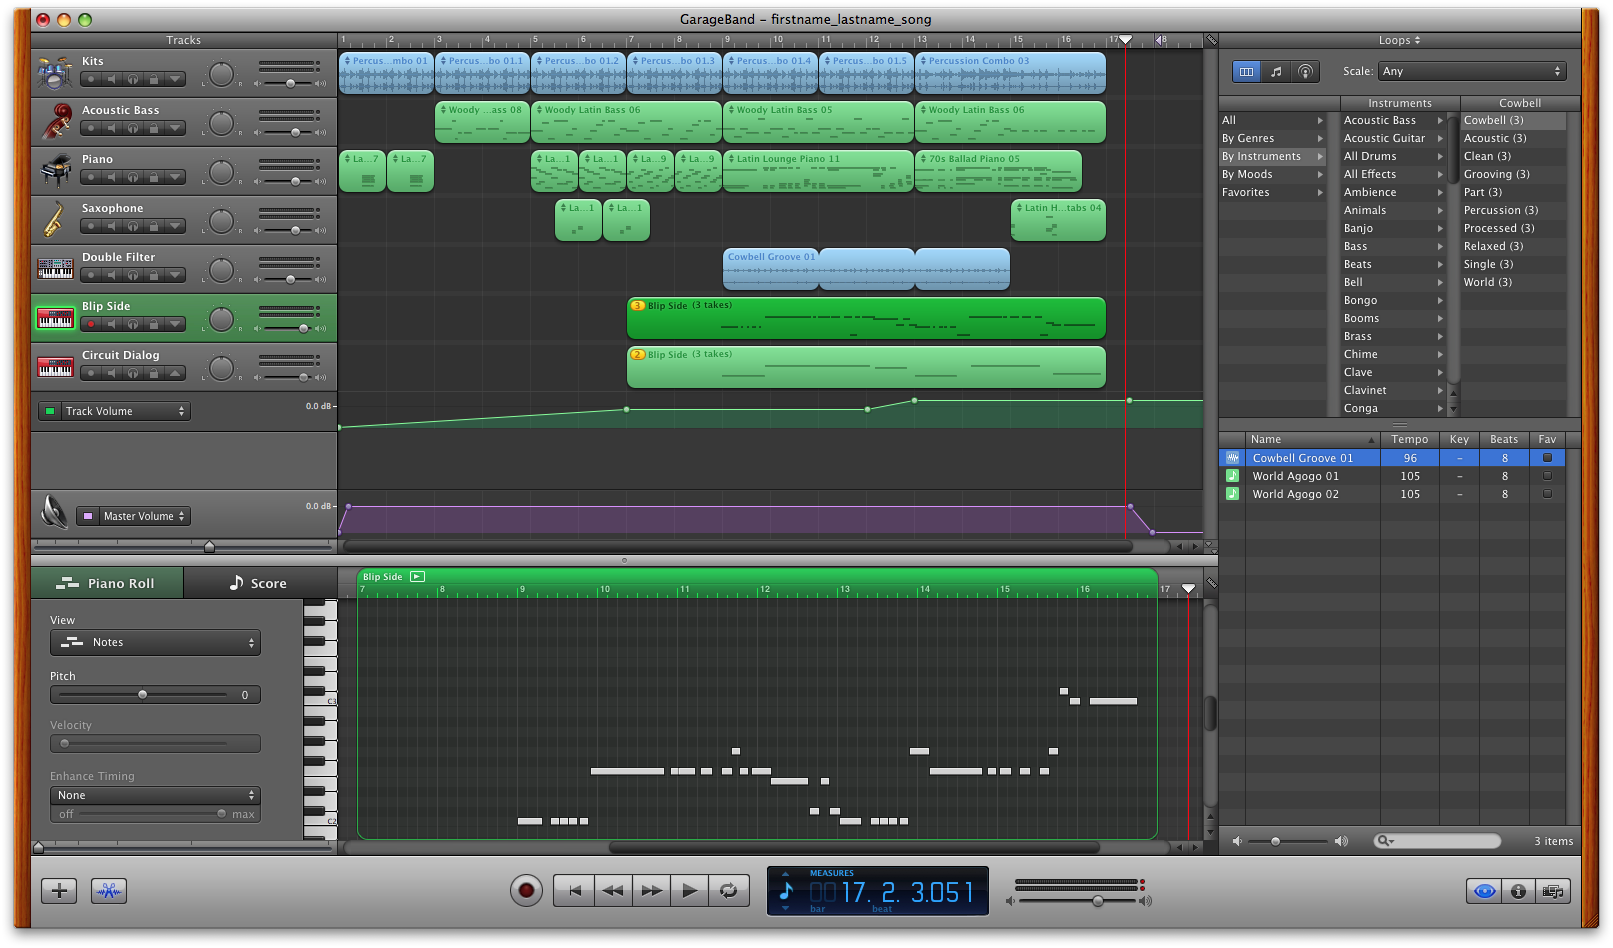 Tutorial how to record a song in garage band music technology tutorial how to record a song in garage band baditri Images